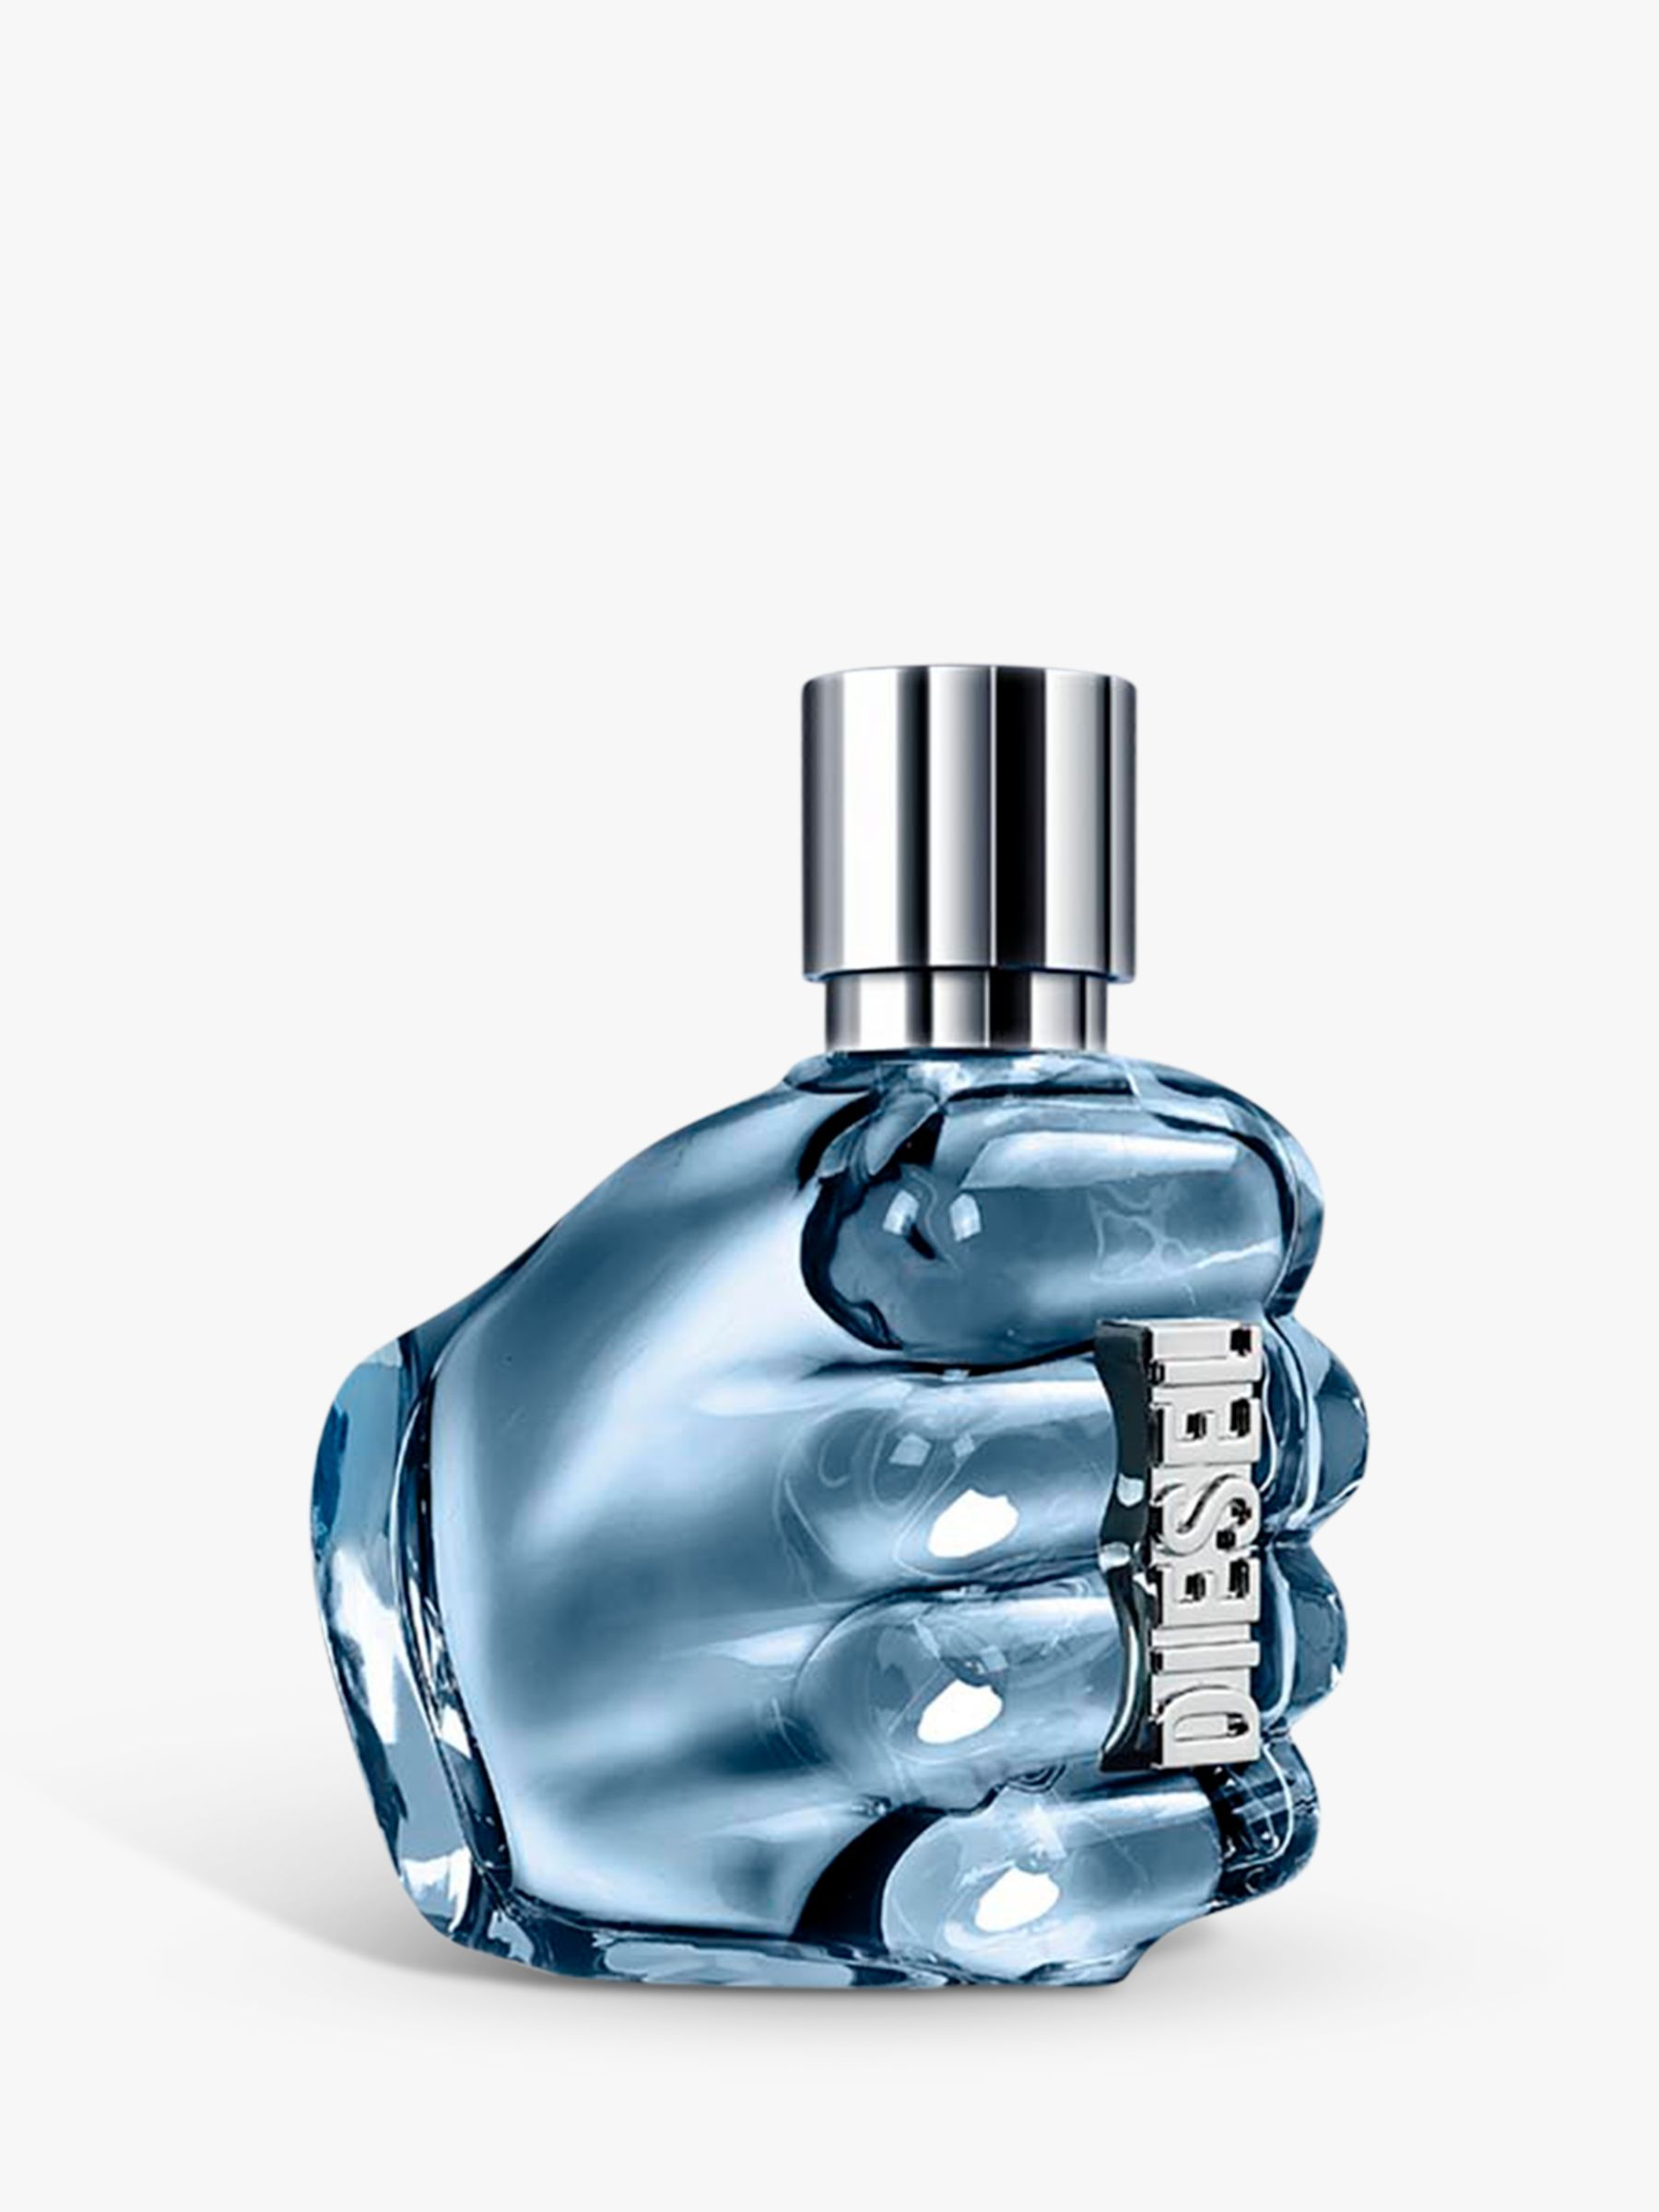 Diesel Diesel Only The Brave Eau de Toilette Spray